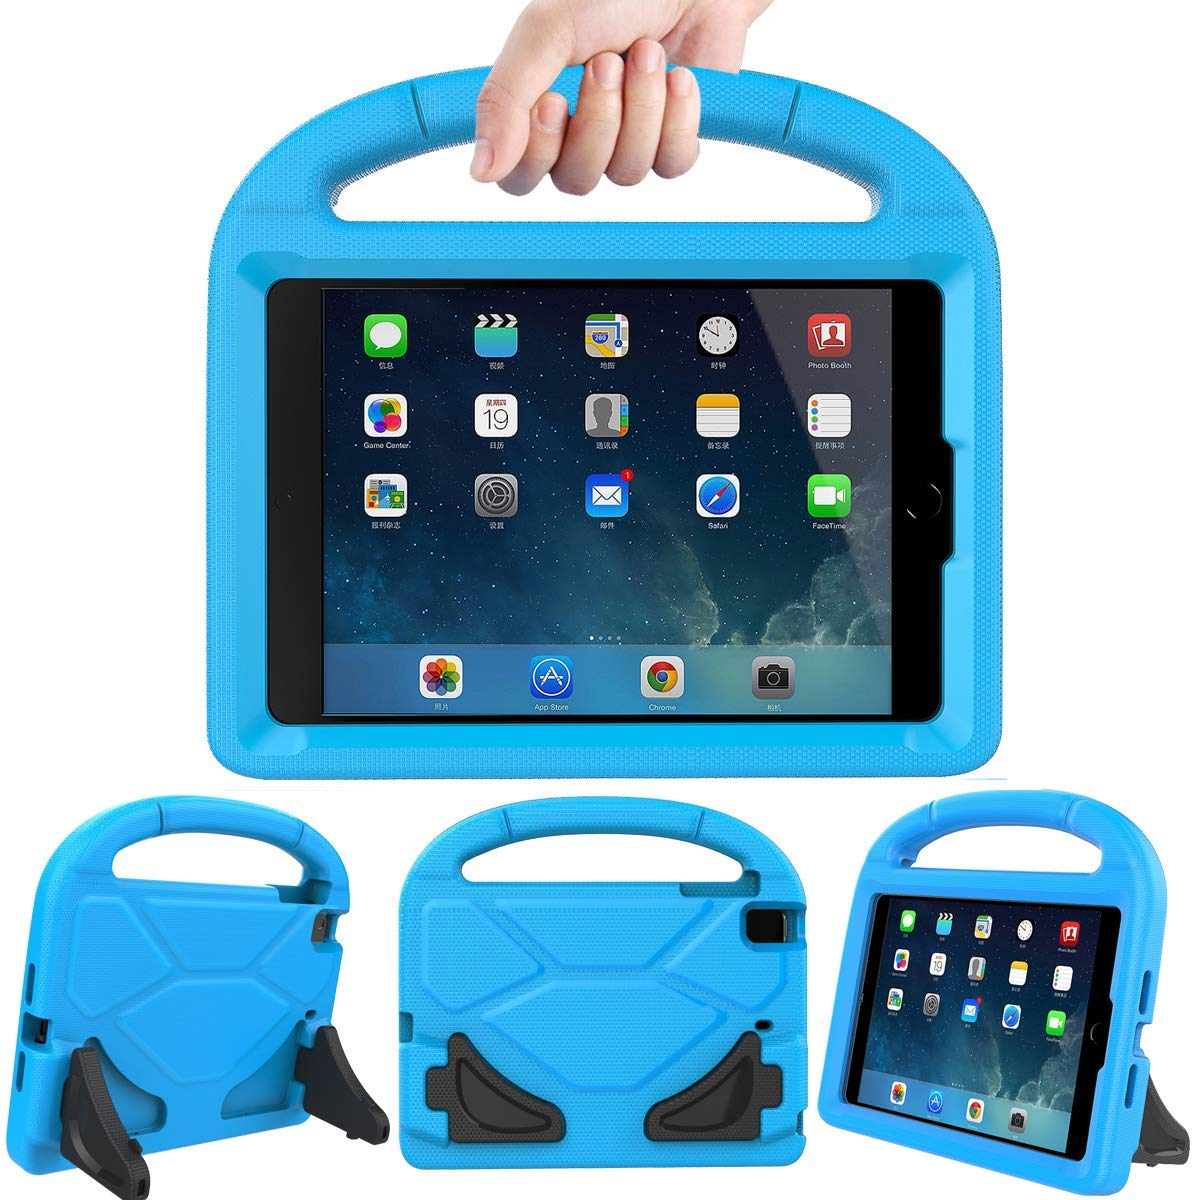 LEDNICEKER Kids Case for iPad Mini 1 2 3 4 5 - Light Weight Shock Proof Handle Friendly Convertible Stand Kids Case for iPad Mini, Mini 5 (2019), Mini 4, iPad Mini 3rd Generation, Mini 2 Tablet - Blue by LEDNICEKER